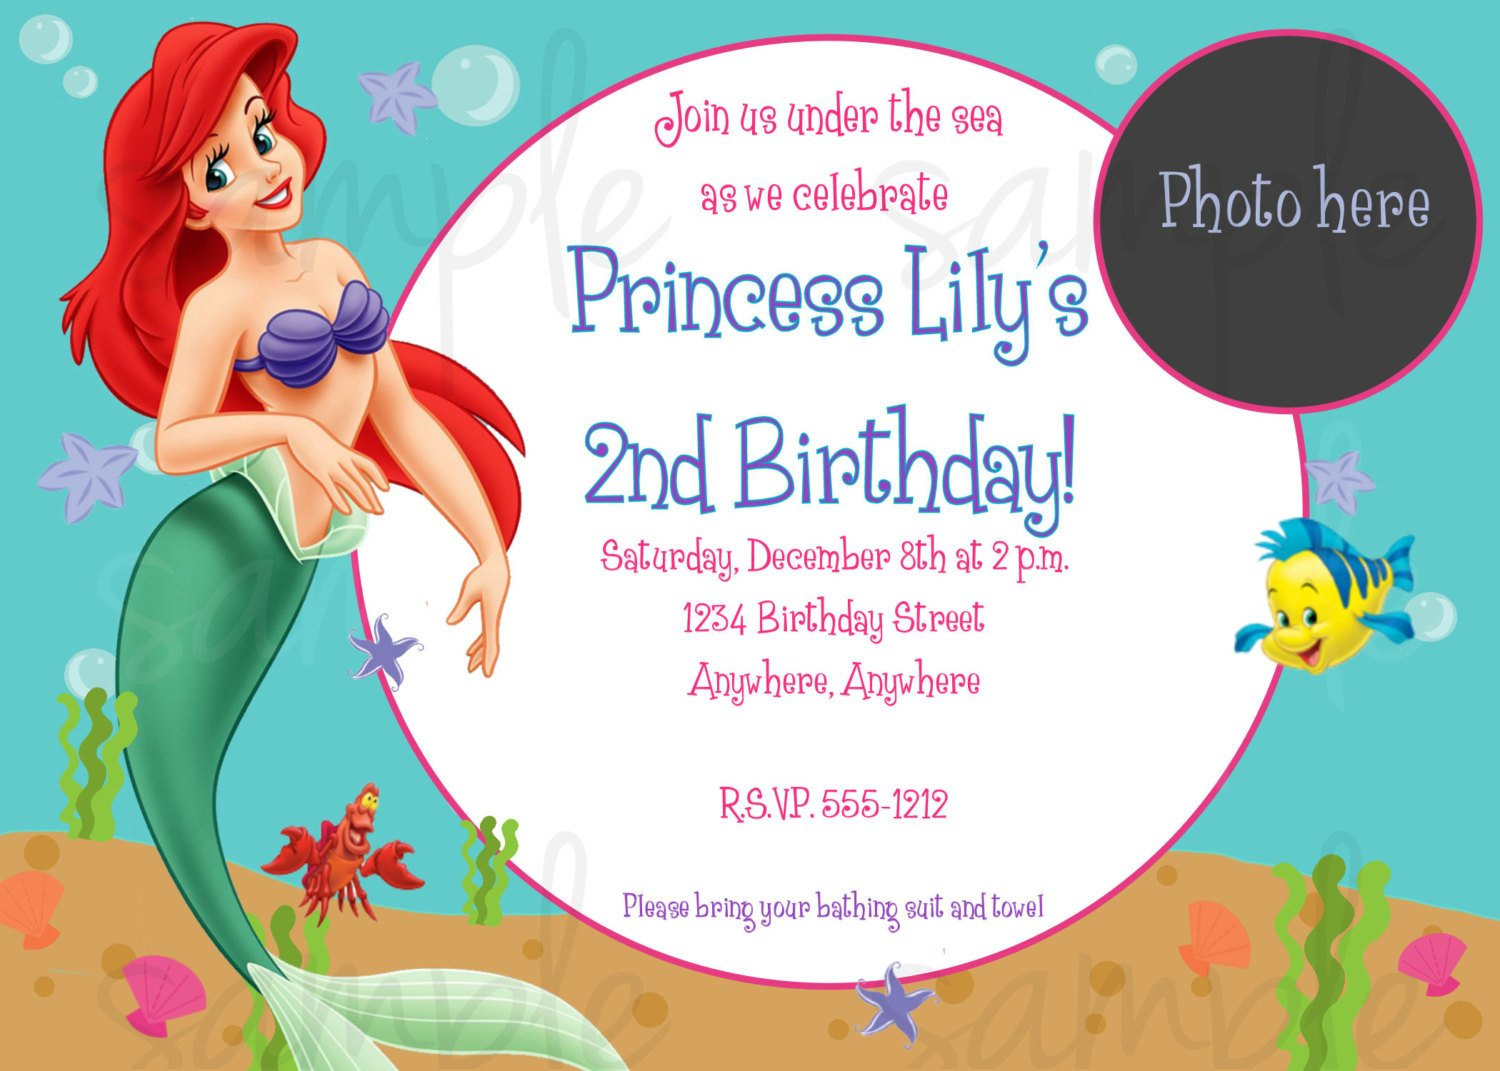 Little Mermaid Wedding Invitations with amazing invitations example